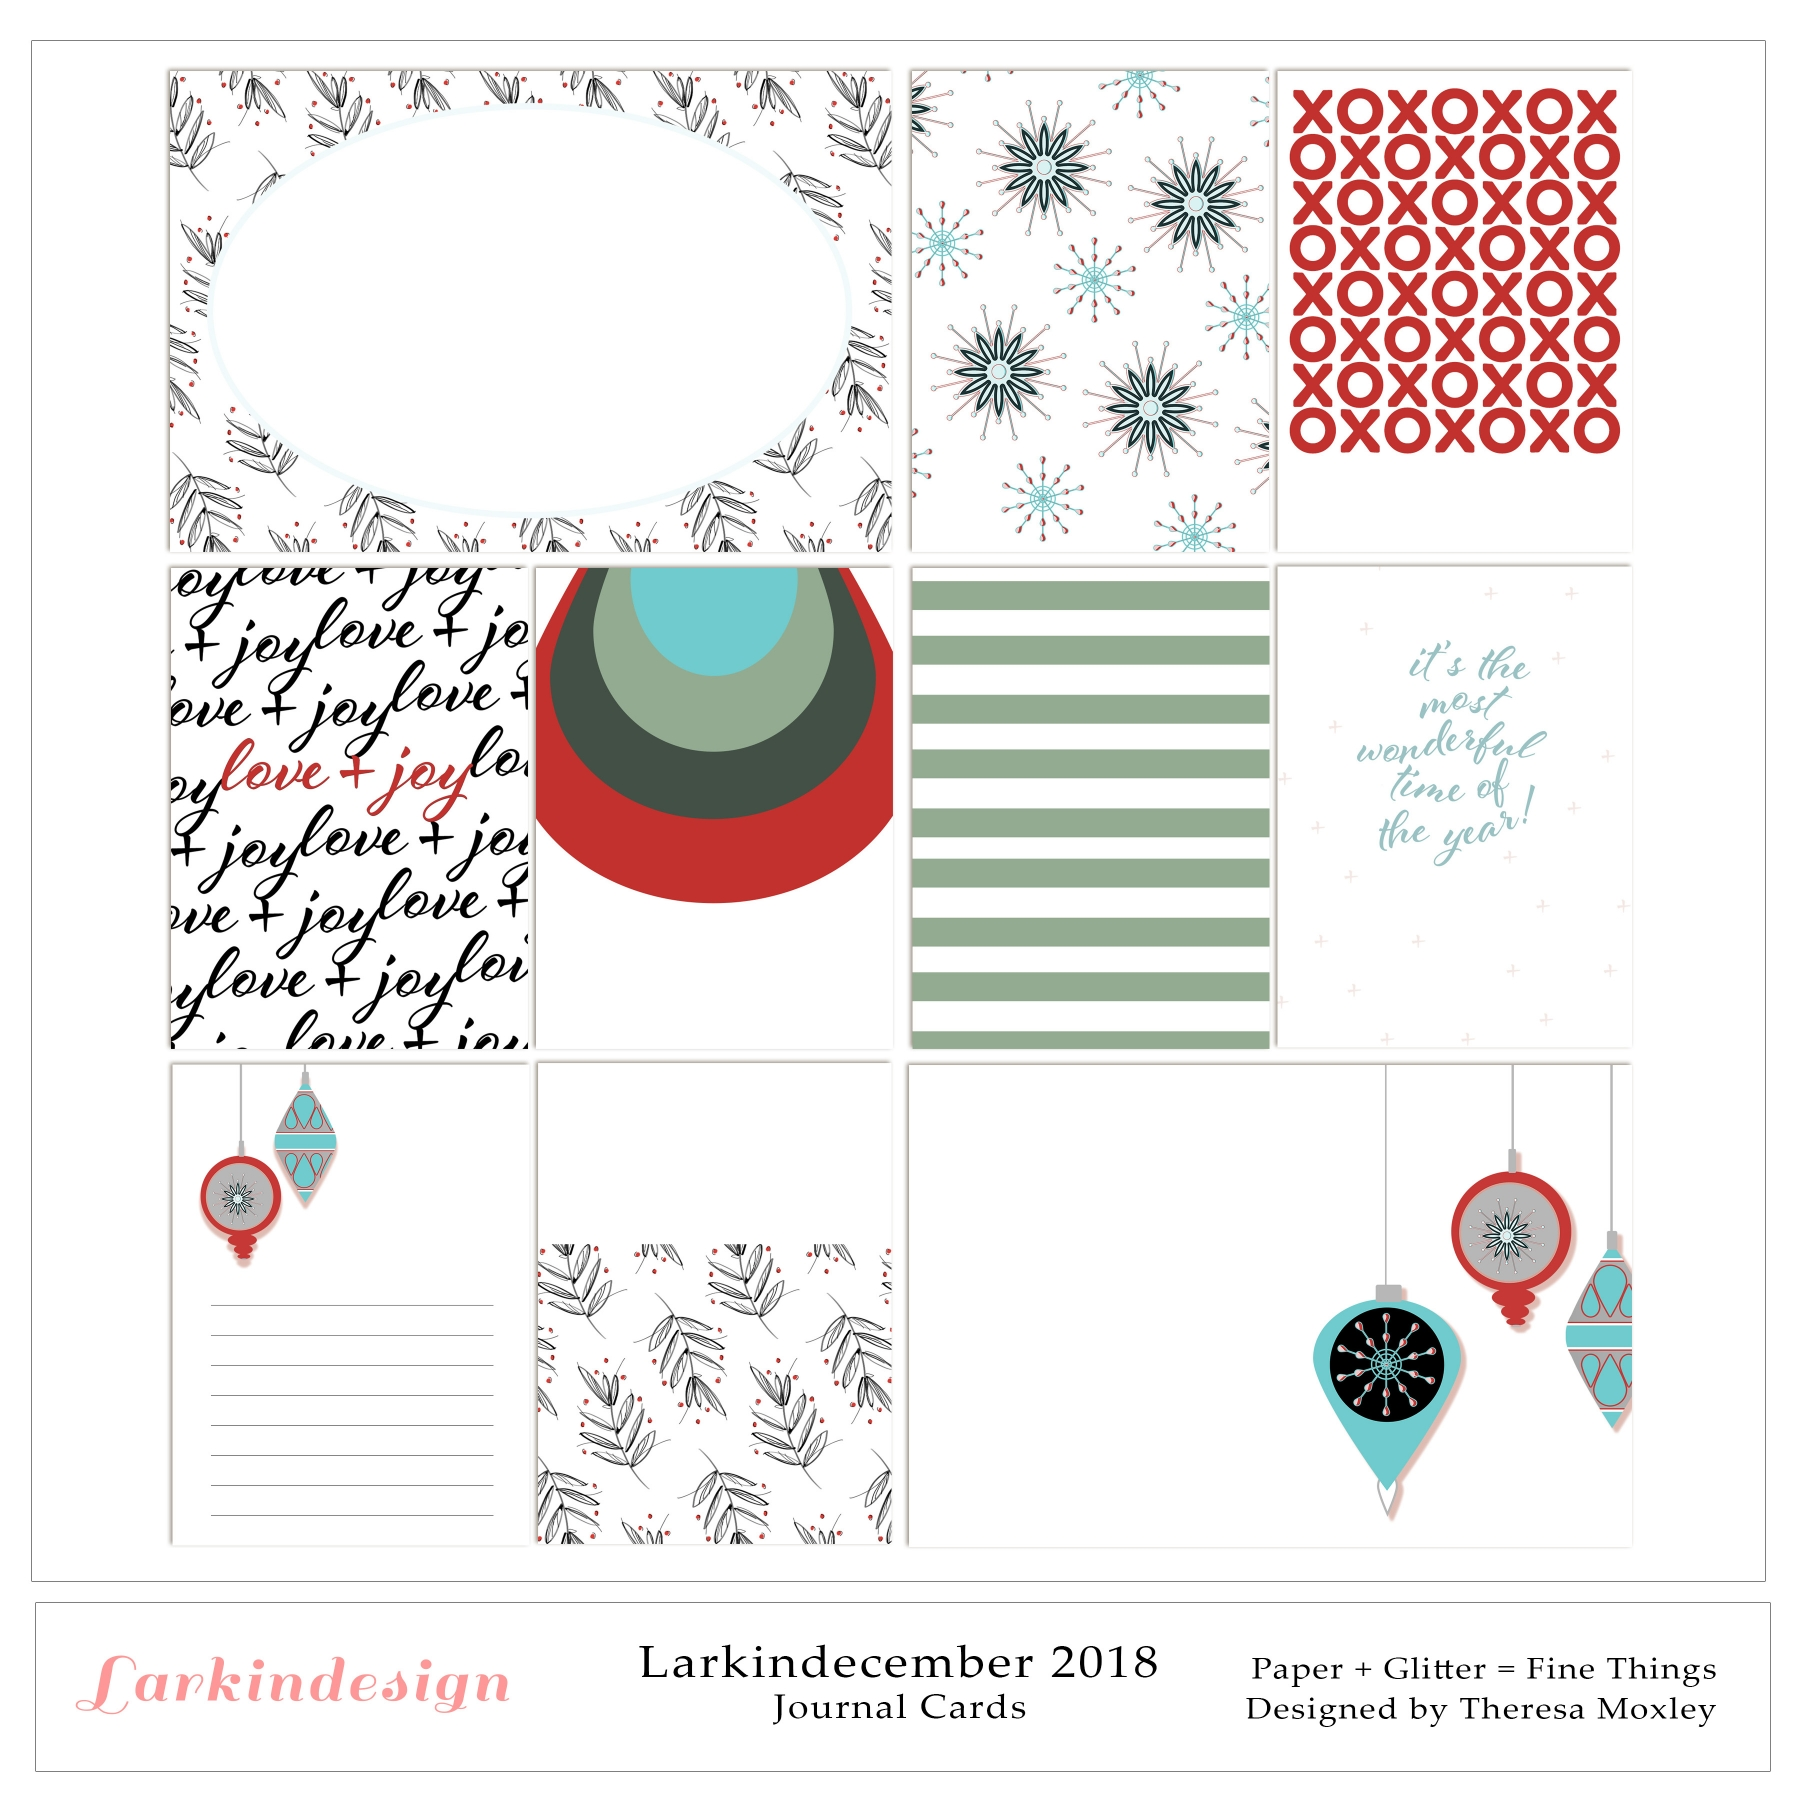 Larkindecember 2018 Journal Cards